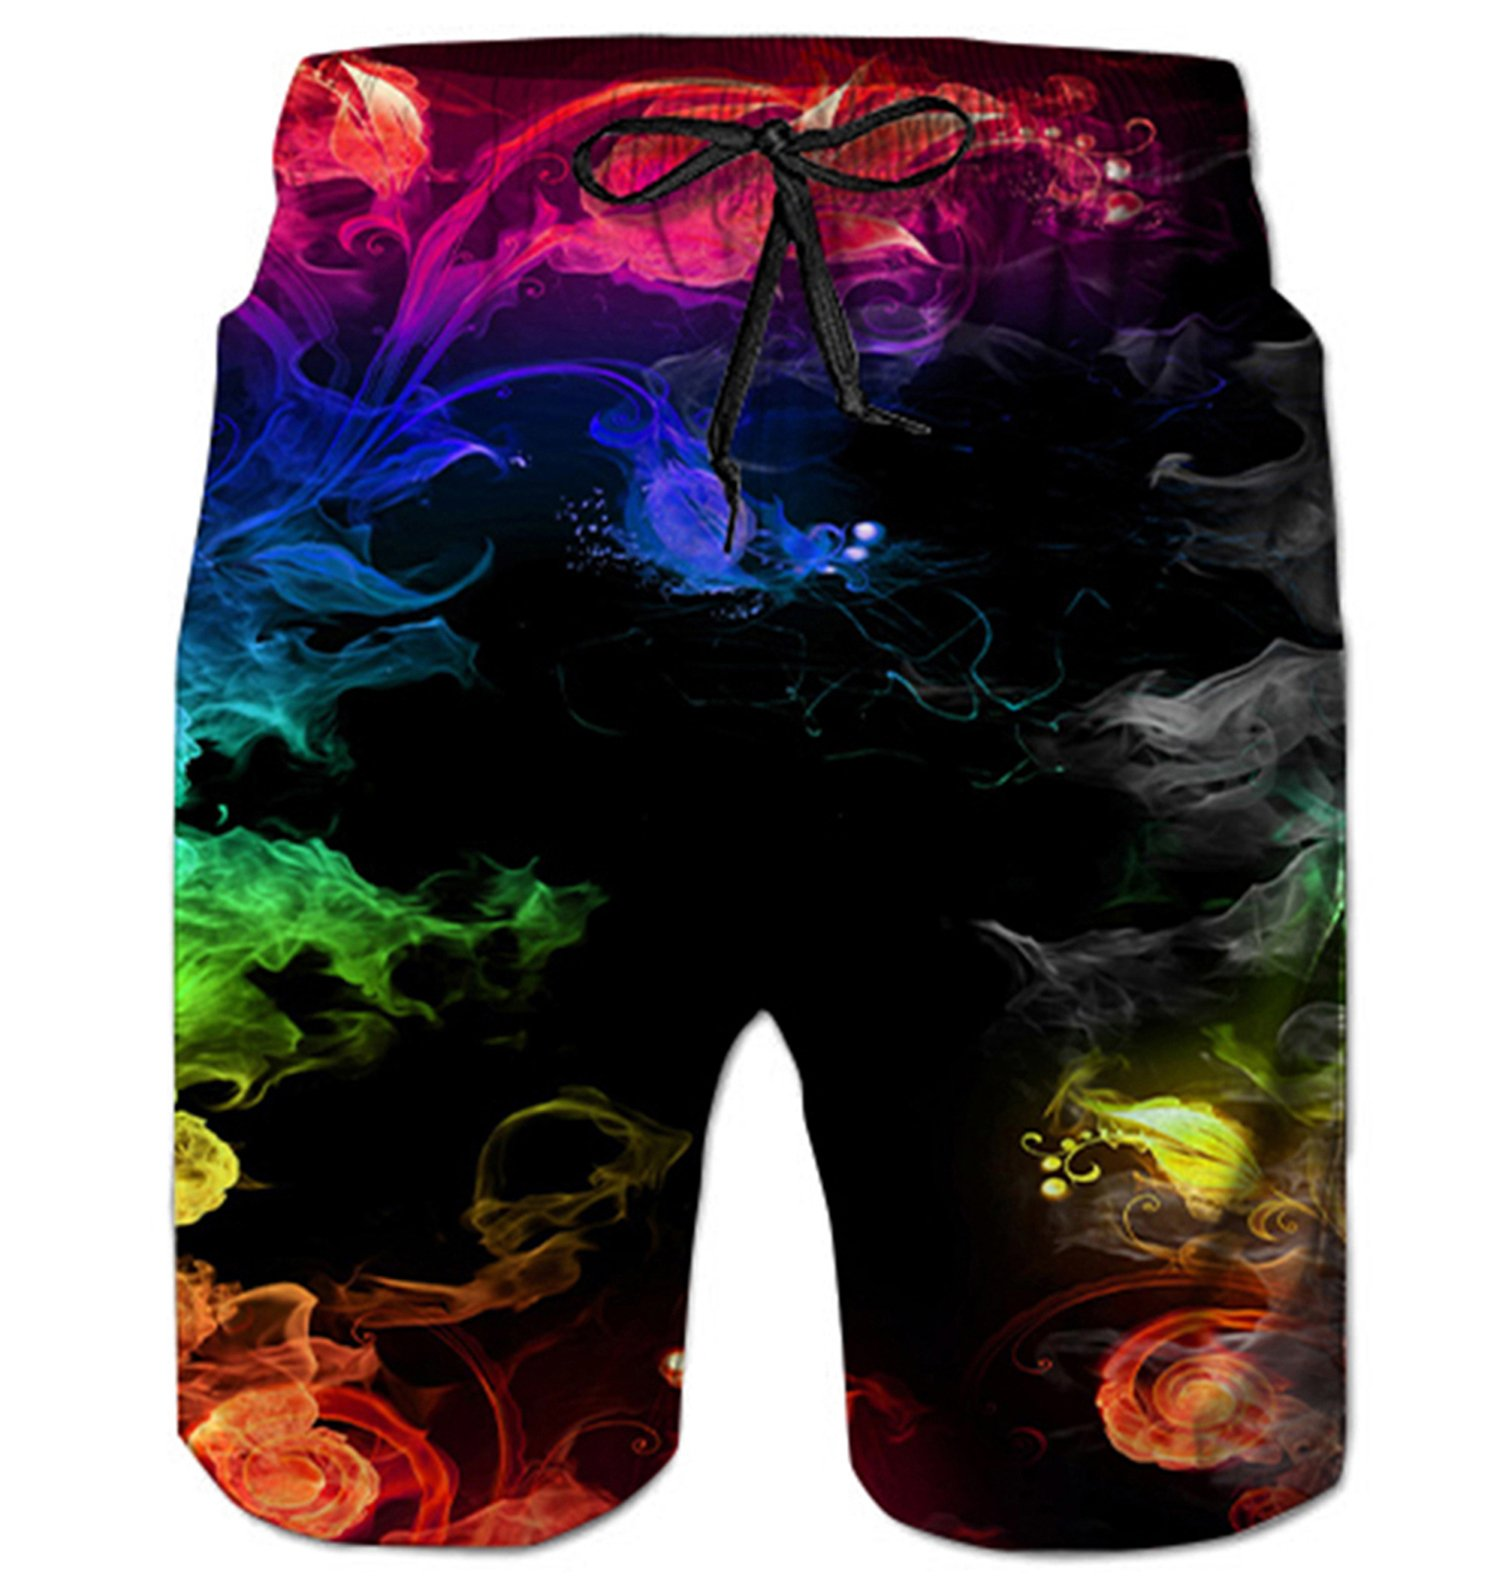 Alistyle Mens Summer Sleeveless 3D Print Colorful Smoke Hawaiian Graphic Beach Shorts Large